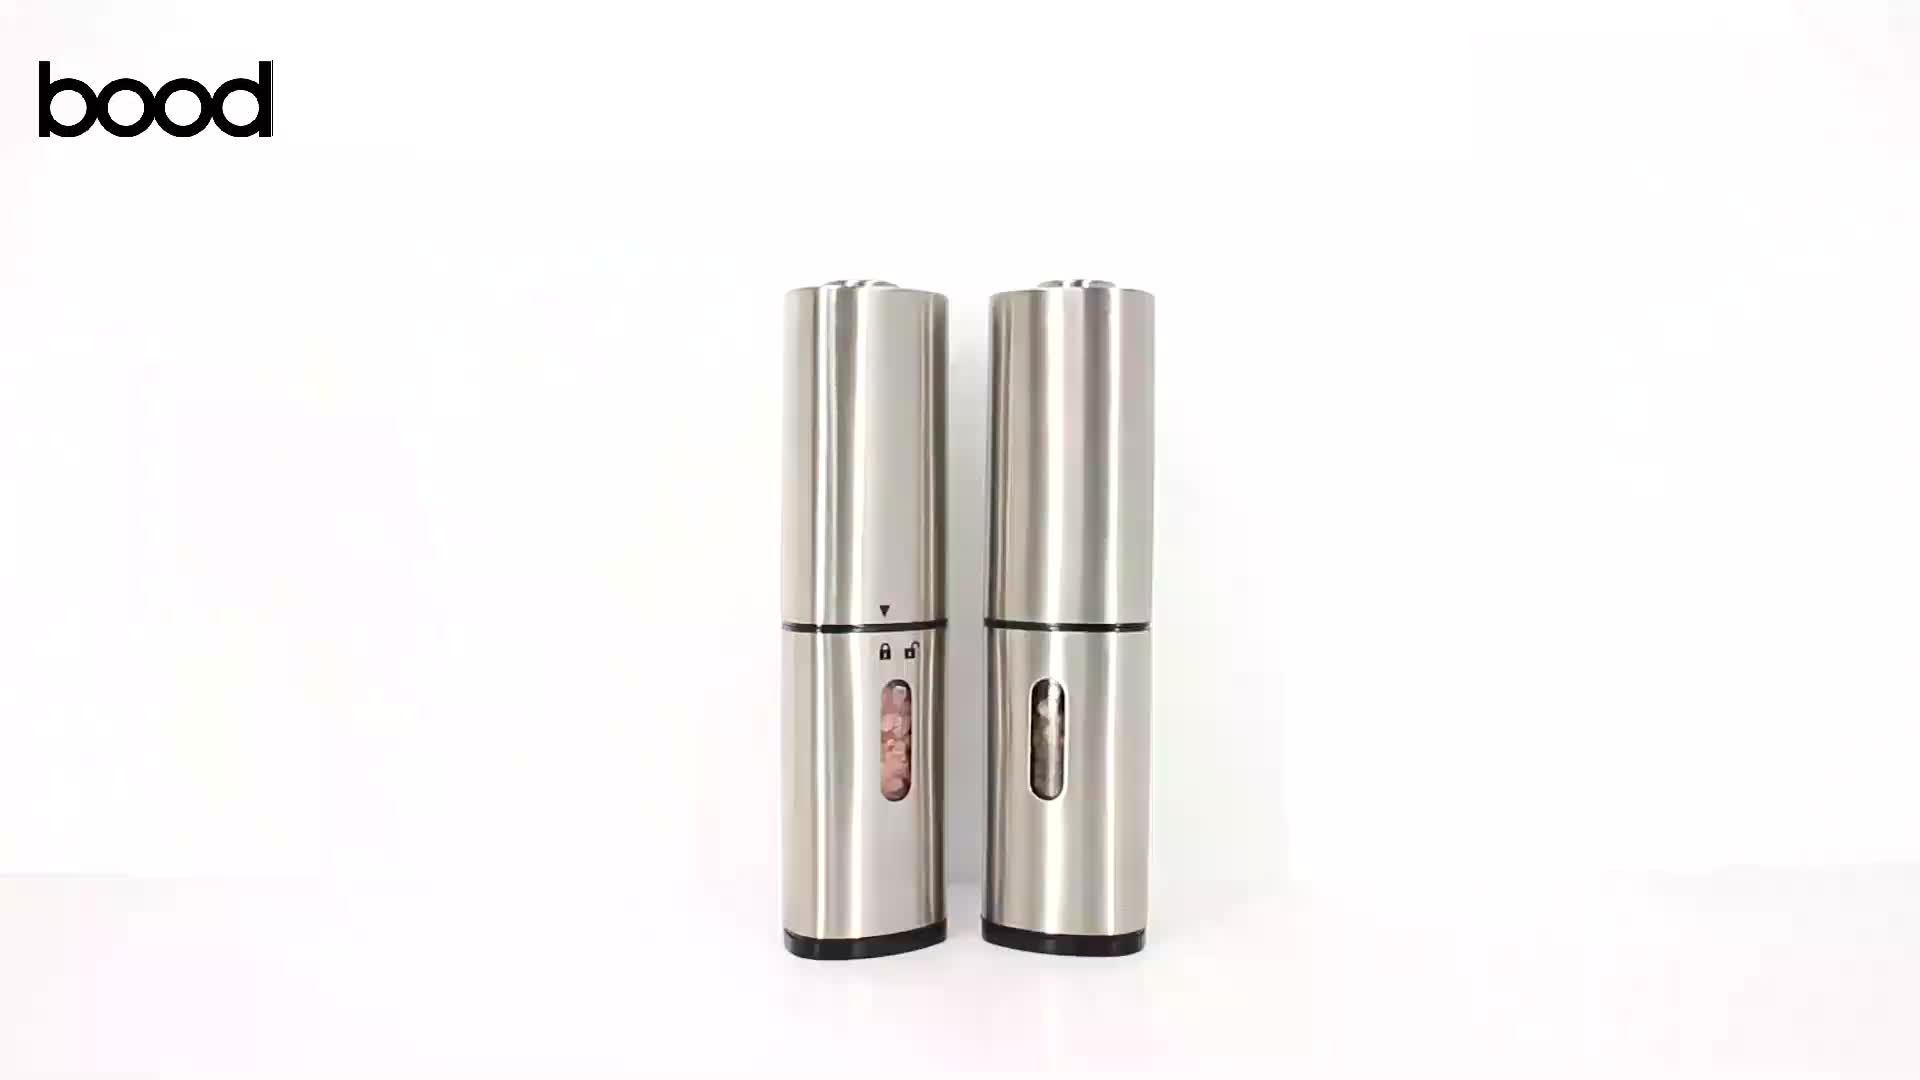 triangular stainless steel electric pepper and slat grinder